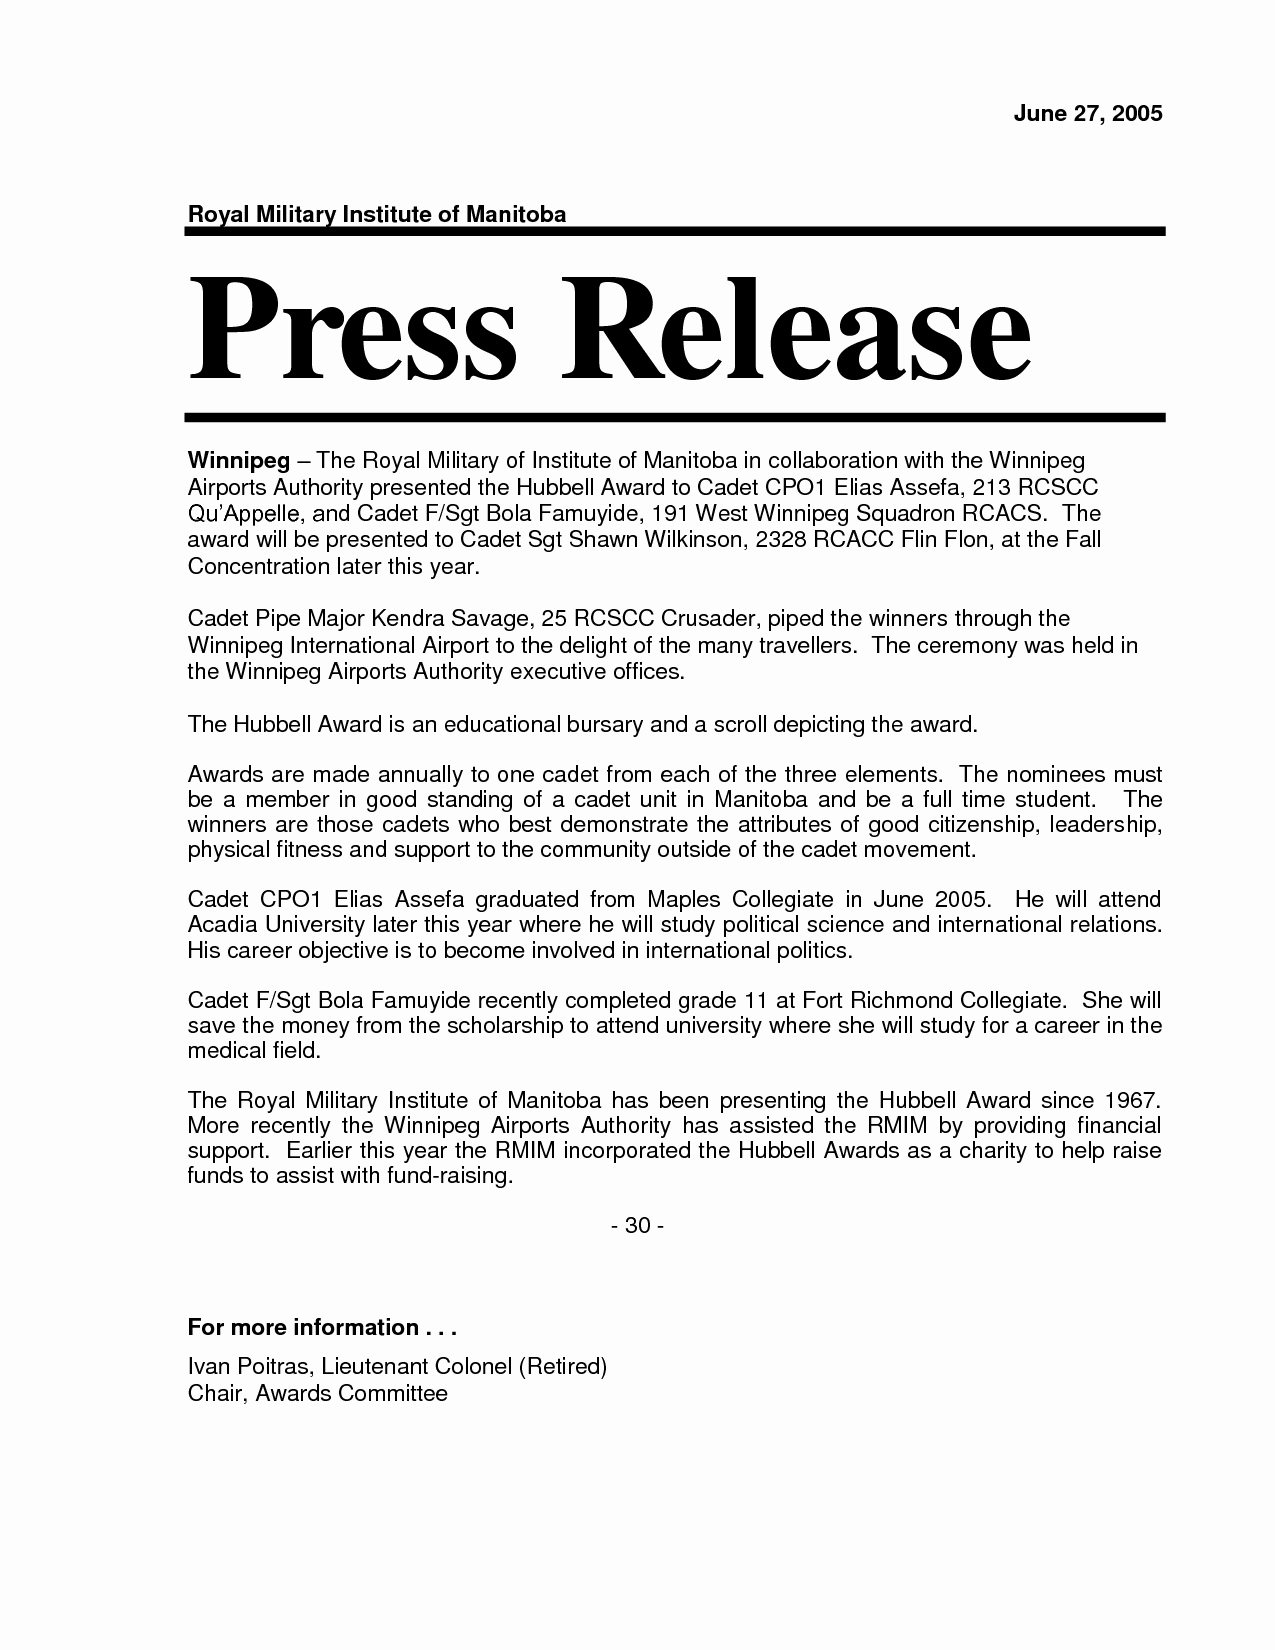 Free Press Release Template Word Luxury Release Press Release Template